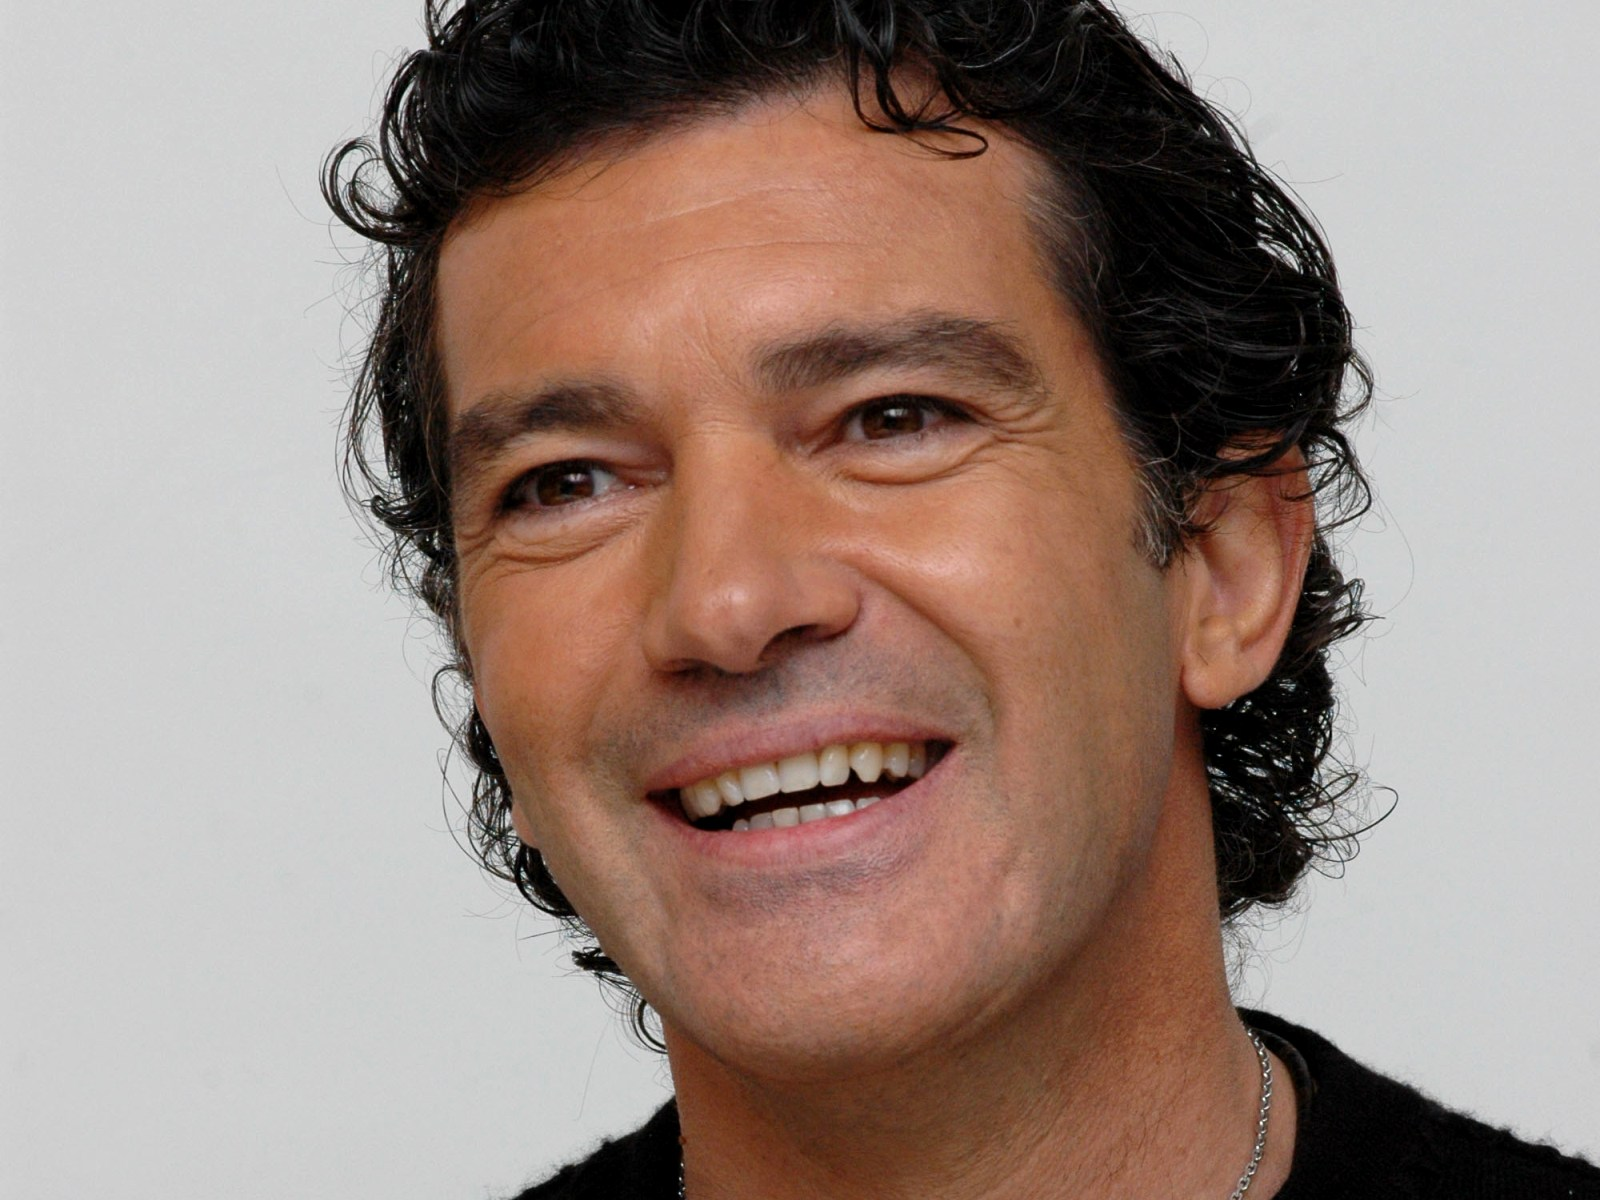 What Do You Know About Antonio Banderas? - ProProfs Quiz Antonio Banderas